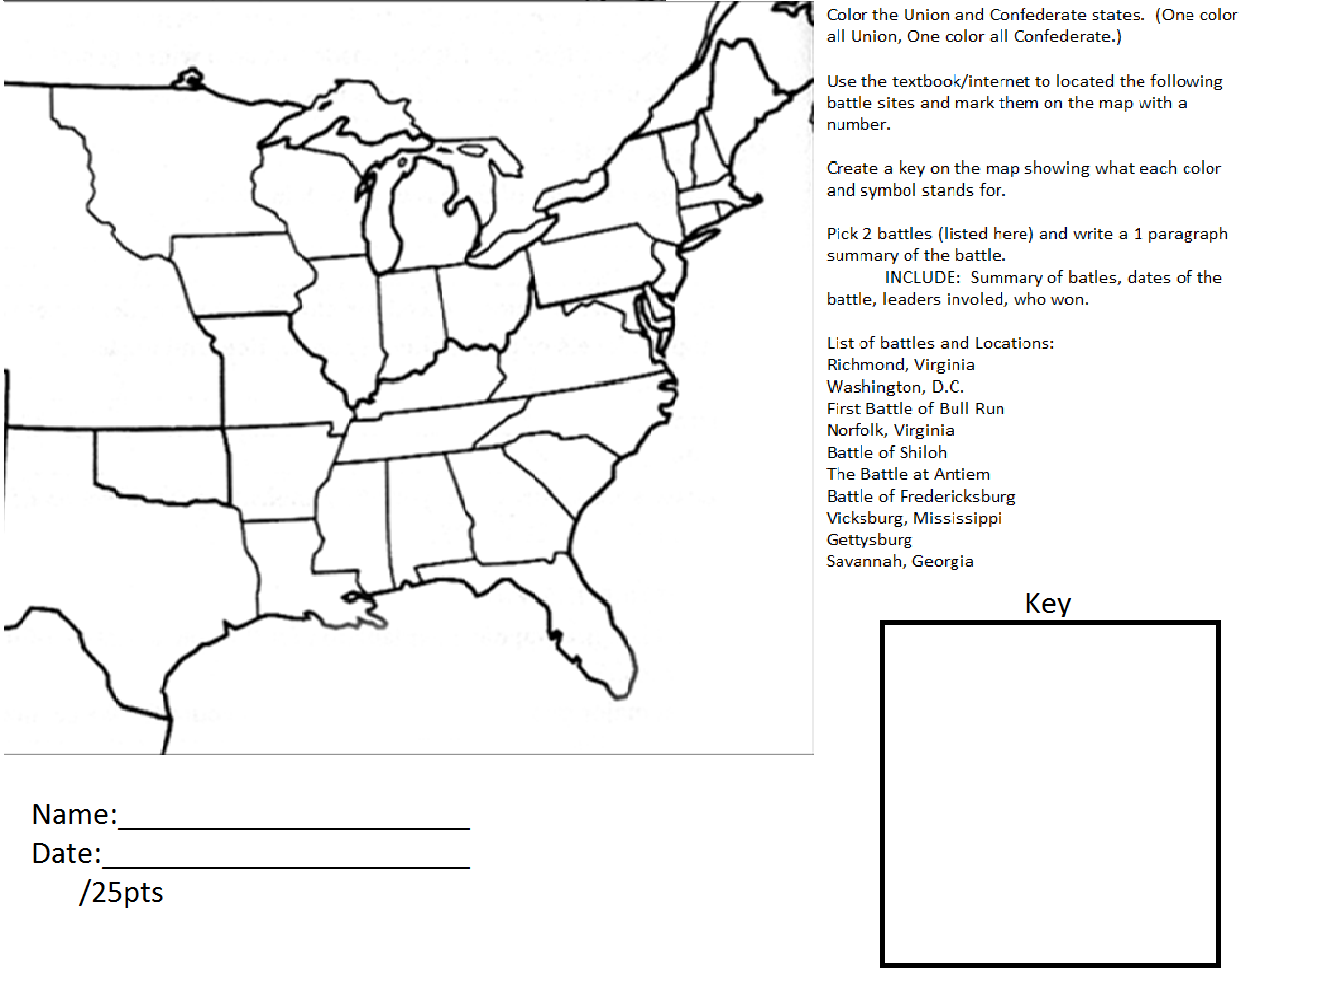 Unit VI Civil War and Reconstruction Mr Daltons Class – Civil War Timeline Worksheet